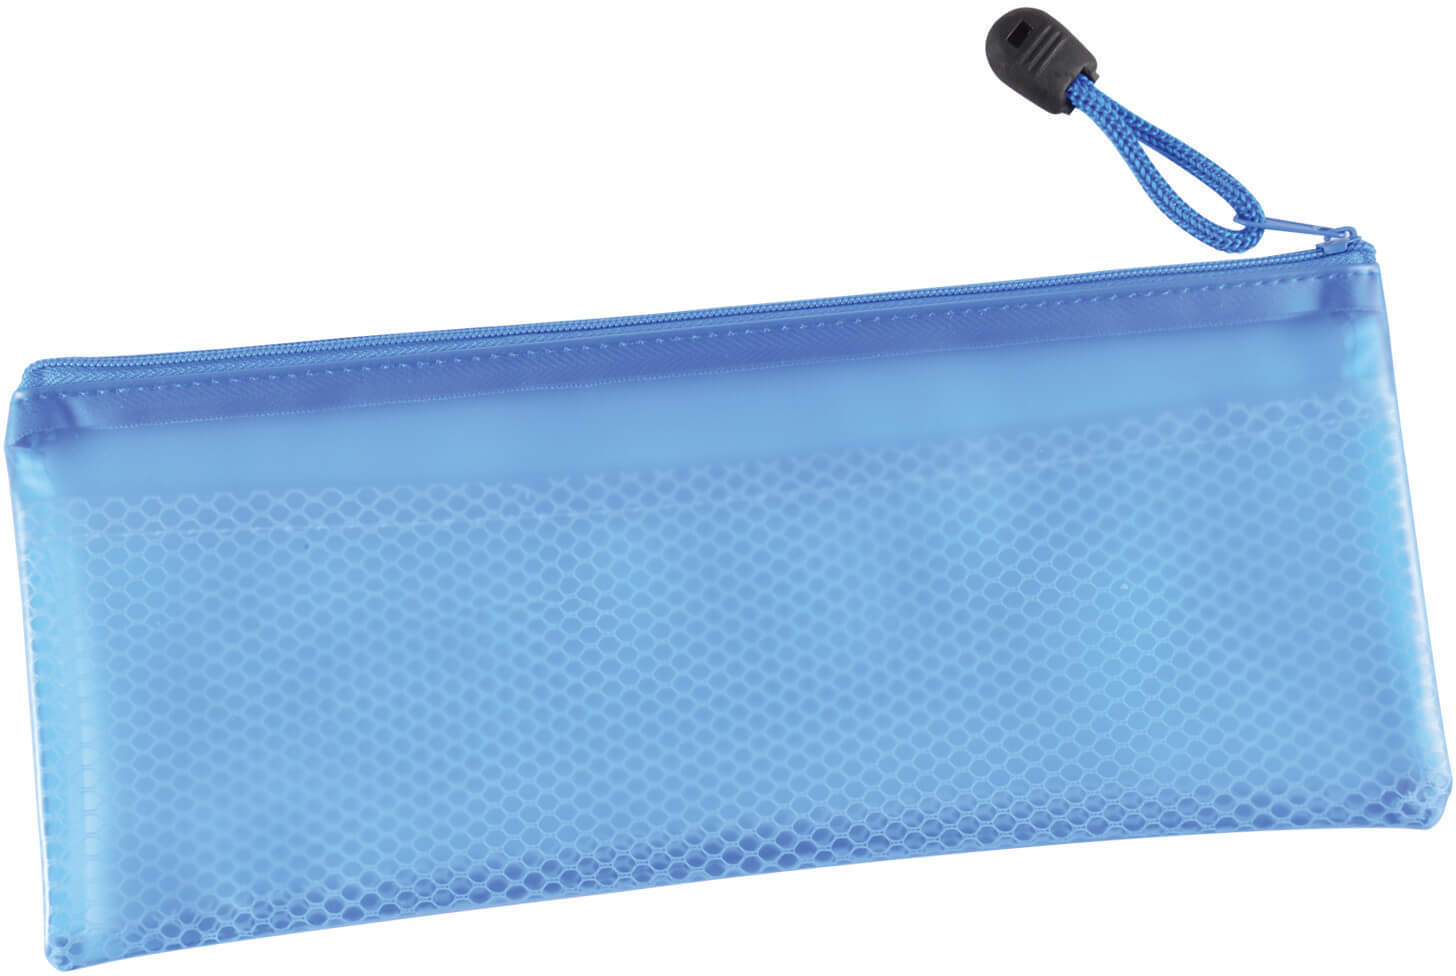 PVC Pencil Case with Zipper and Mesh Divider